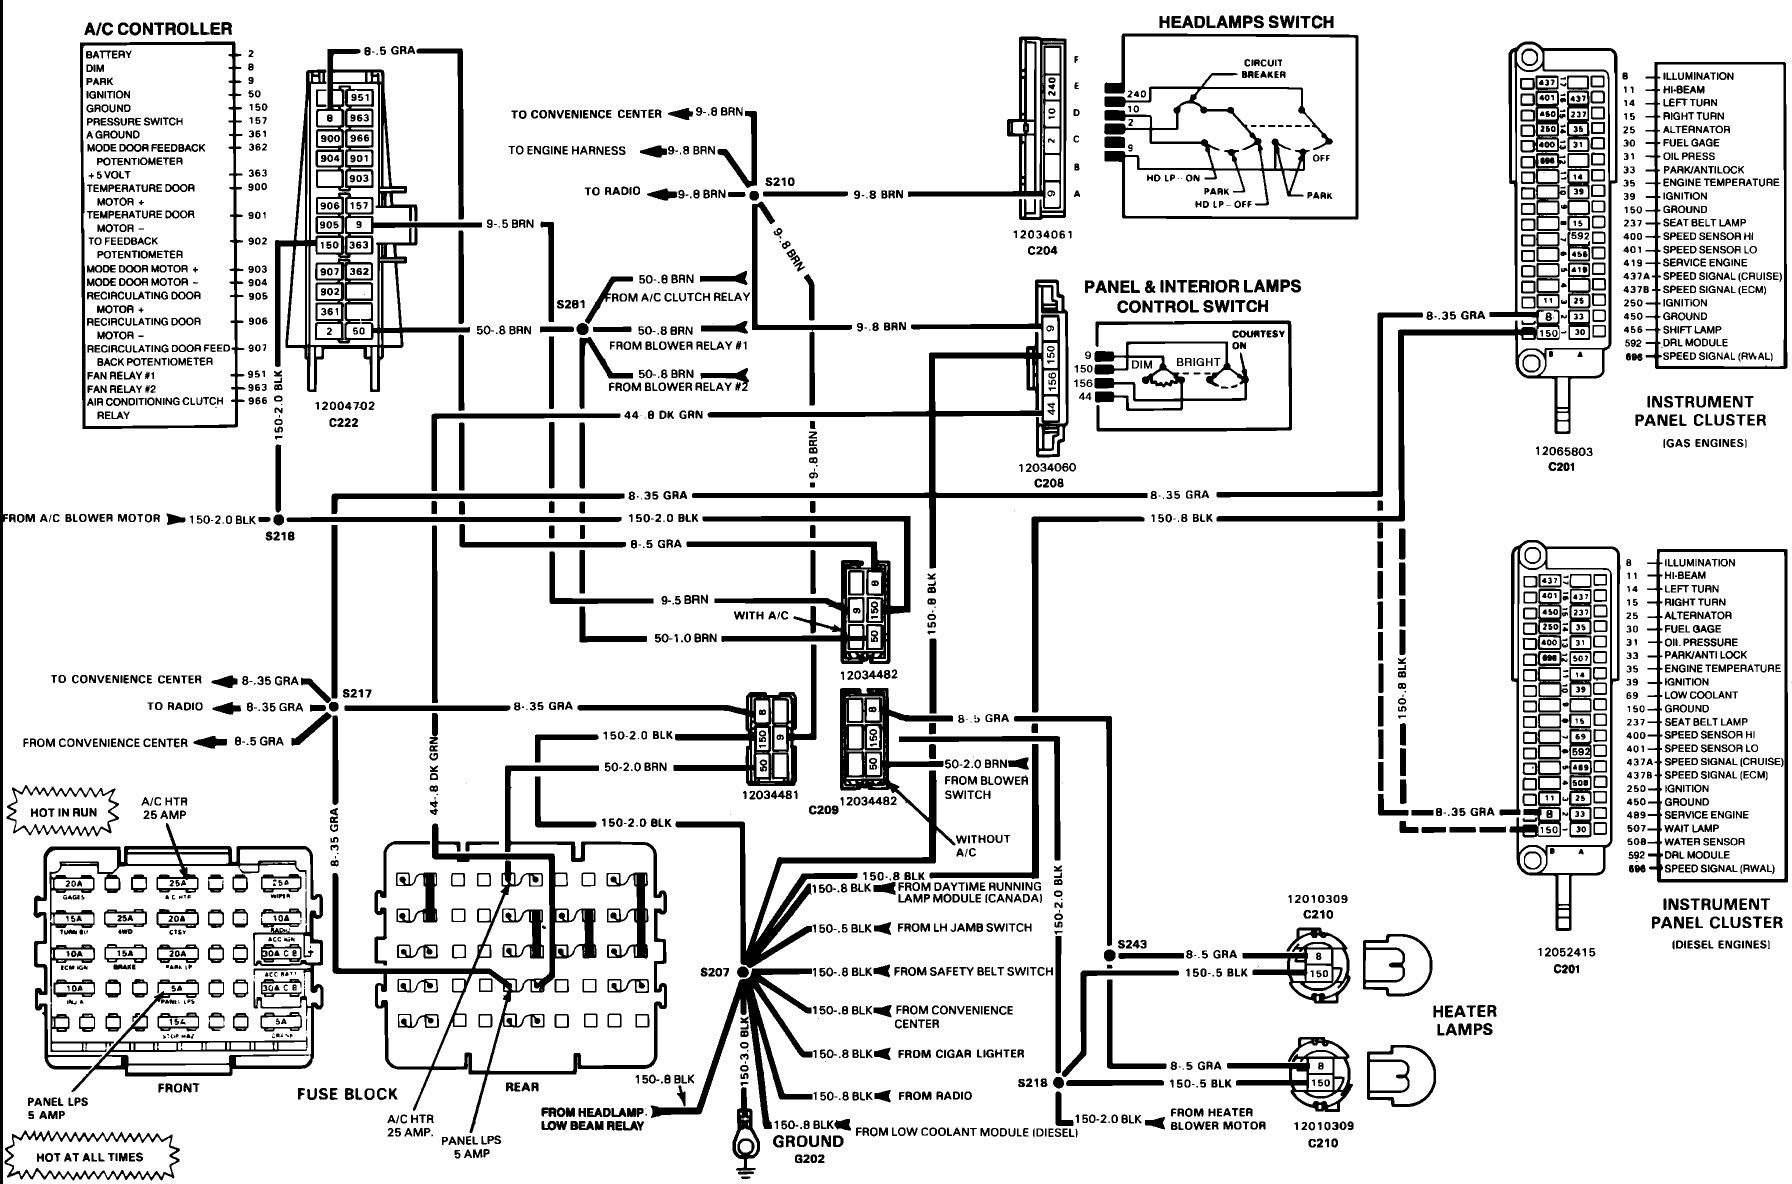 wiring diagram for 1977 gmc sierra grande wiring diagram1977 gmc c65 wiring diagram szi bbzbrighton uk \\u2022